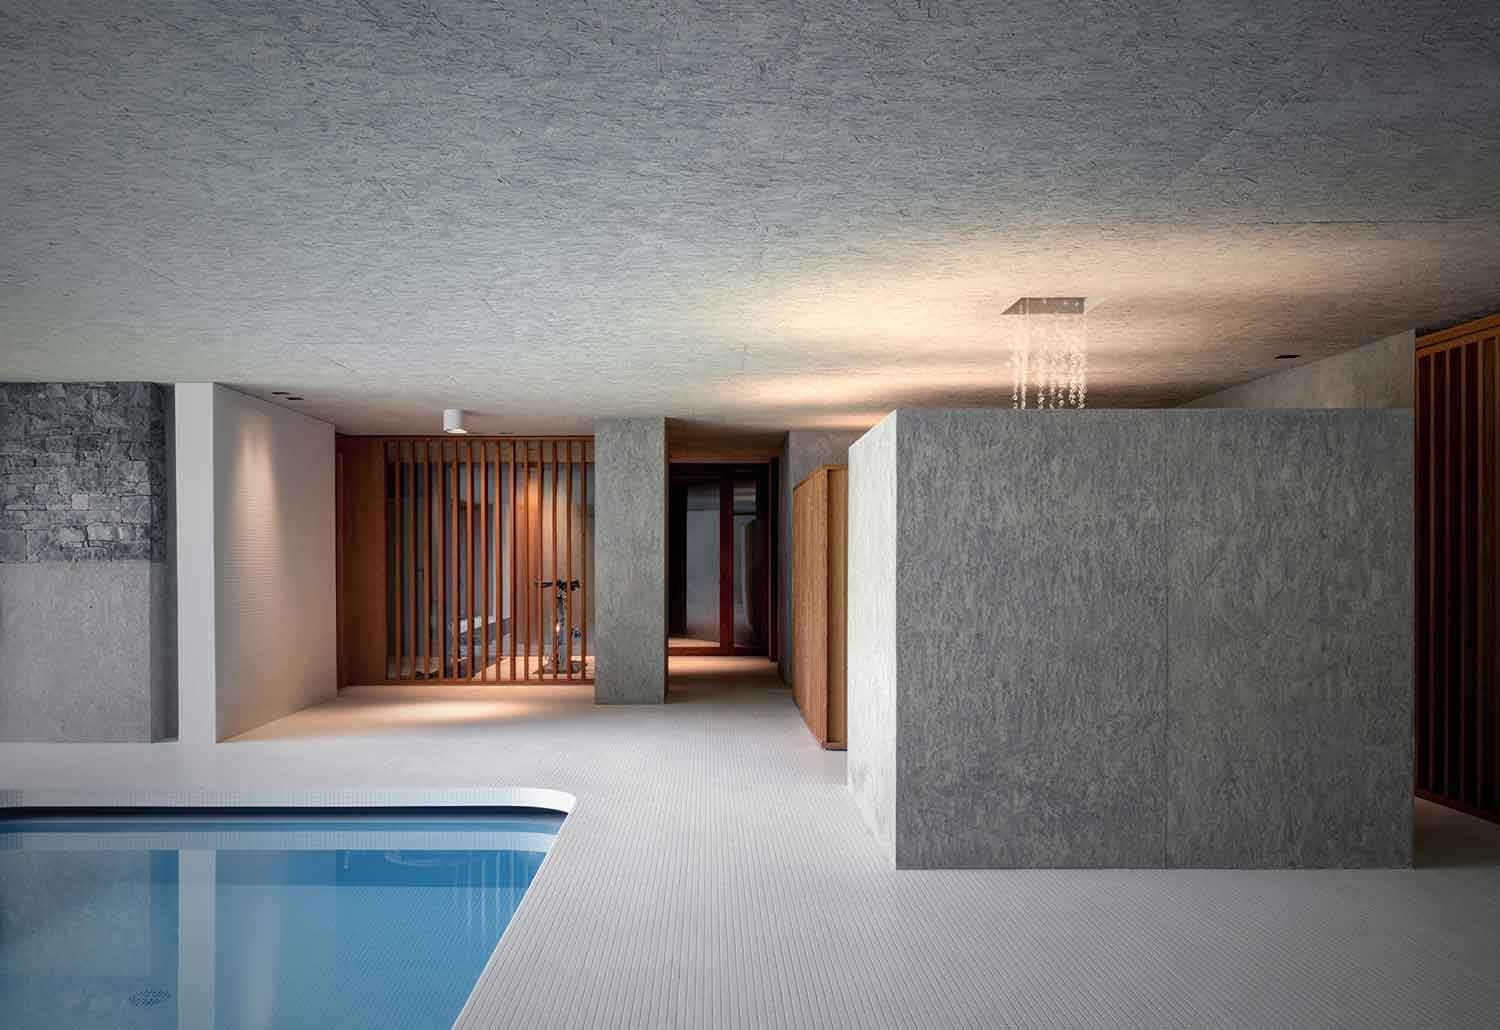 Luxury Indoor Swimming Pool By Act Romegialli - Indoor Schwimmbad